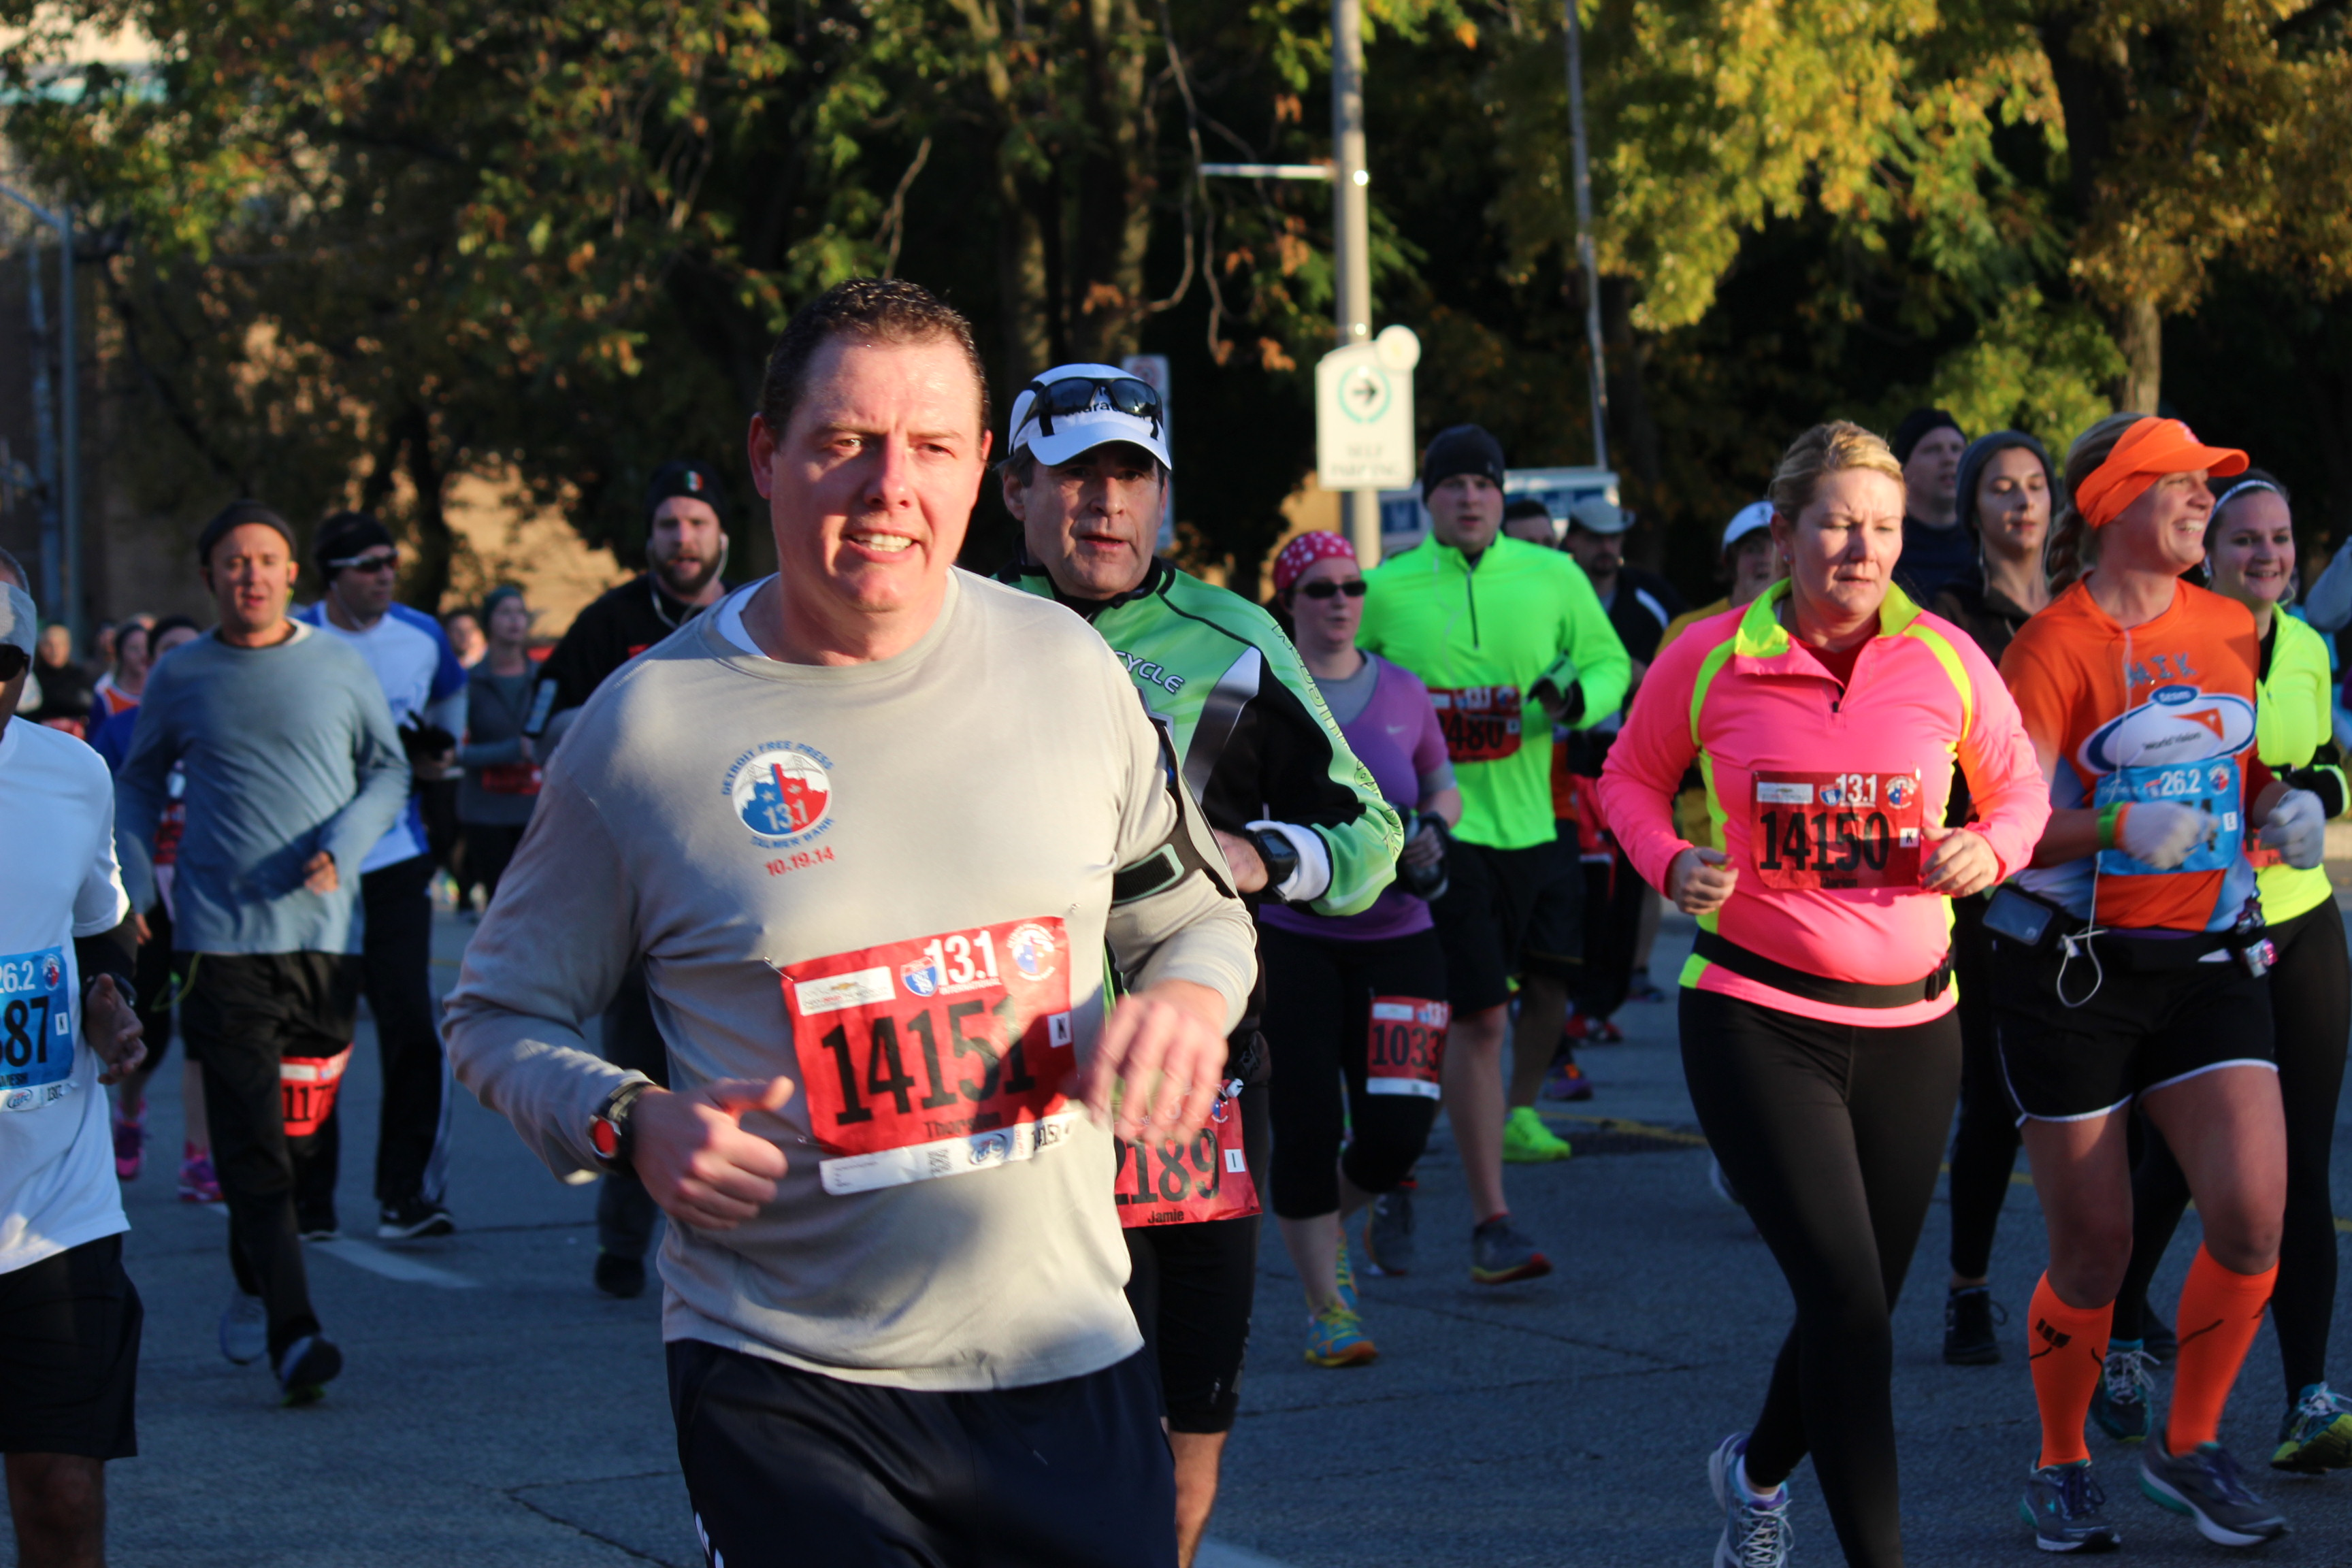 Runners during the 2014 Detroit Free Press Marathon. (Photo by Adelle Loiselle.)